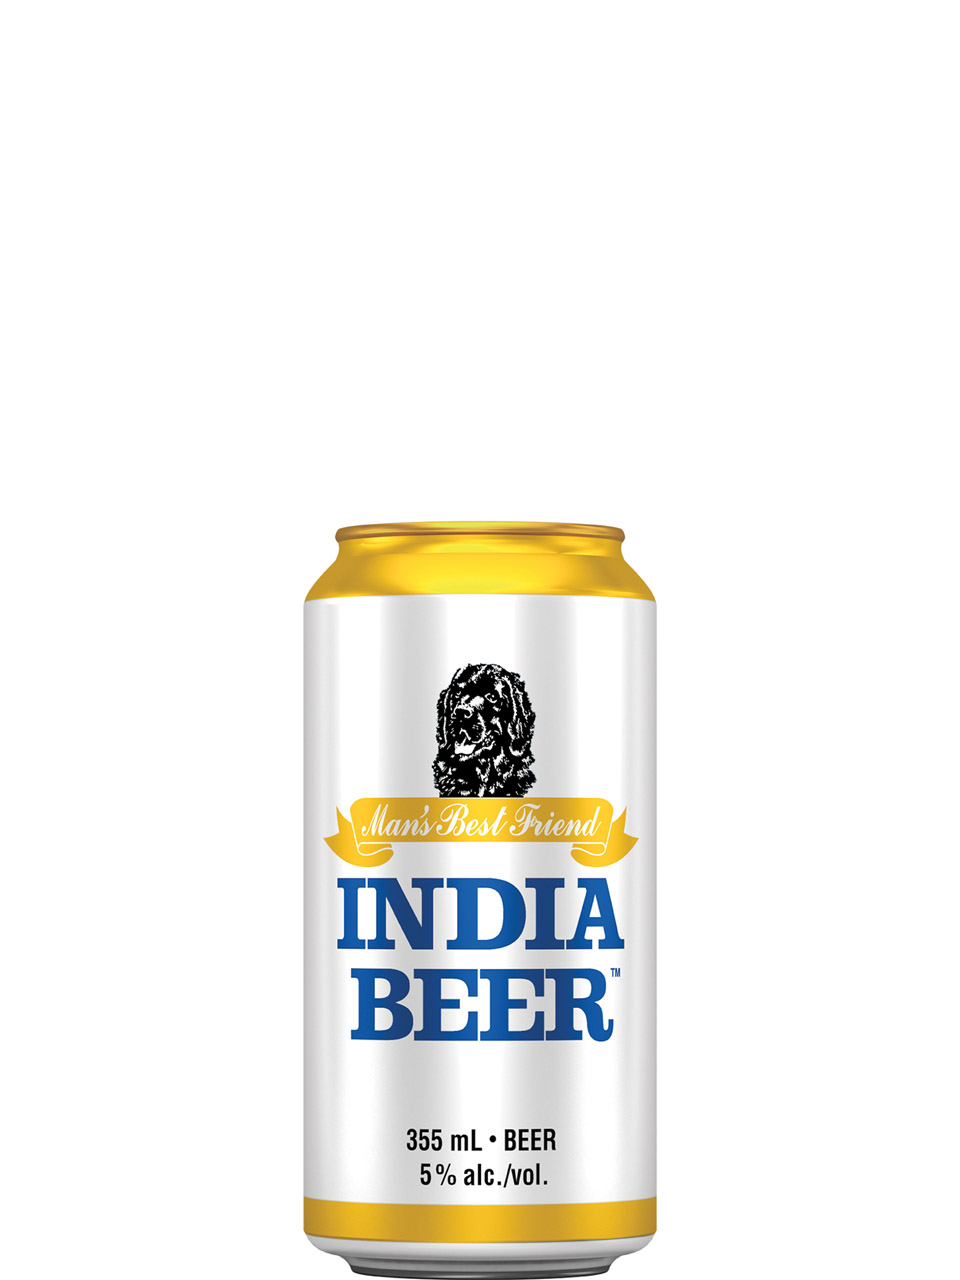 India Beer Cans 8Pk